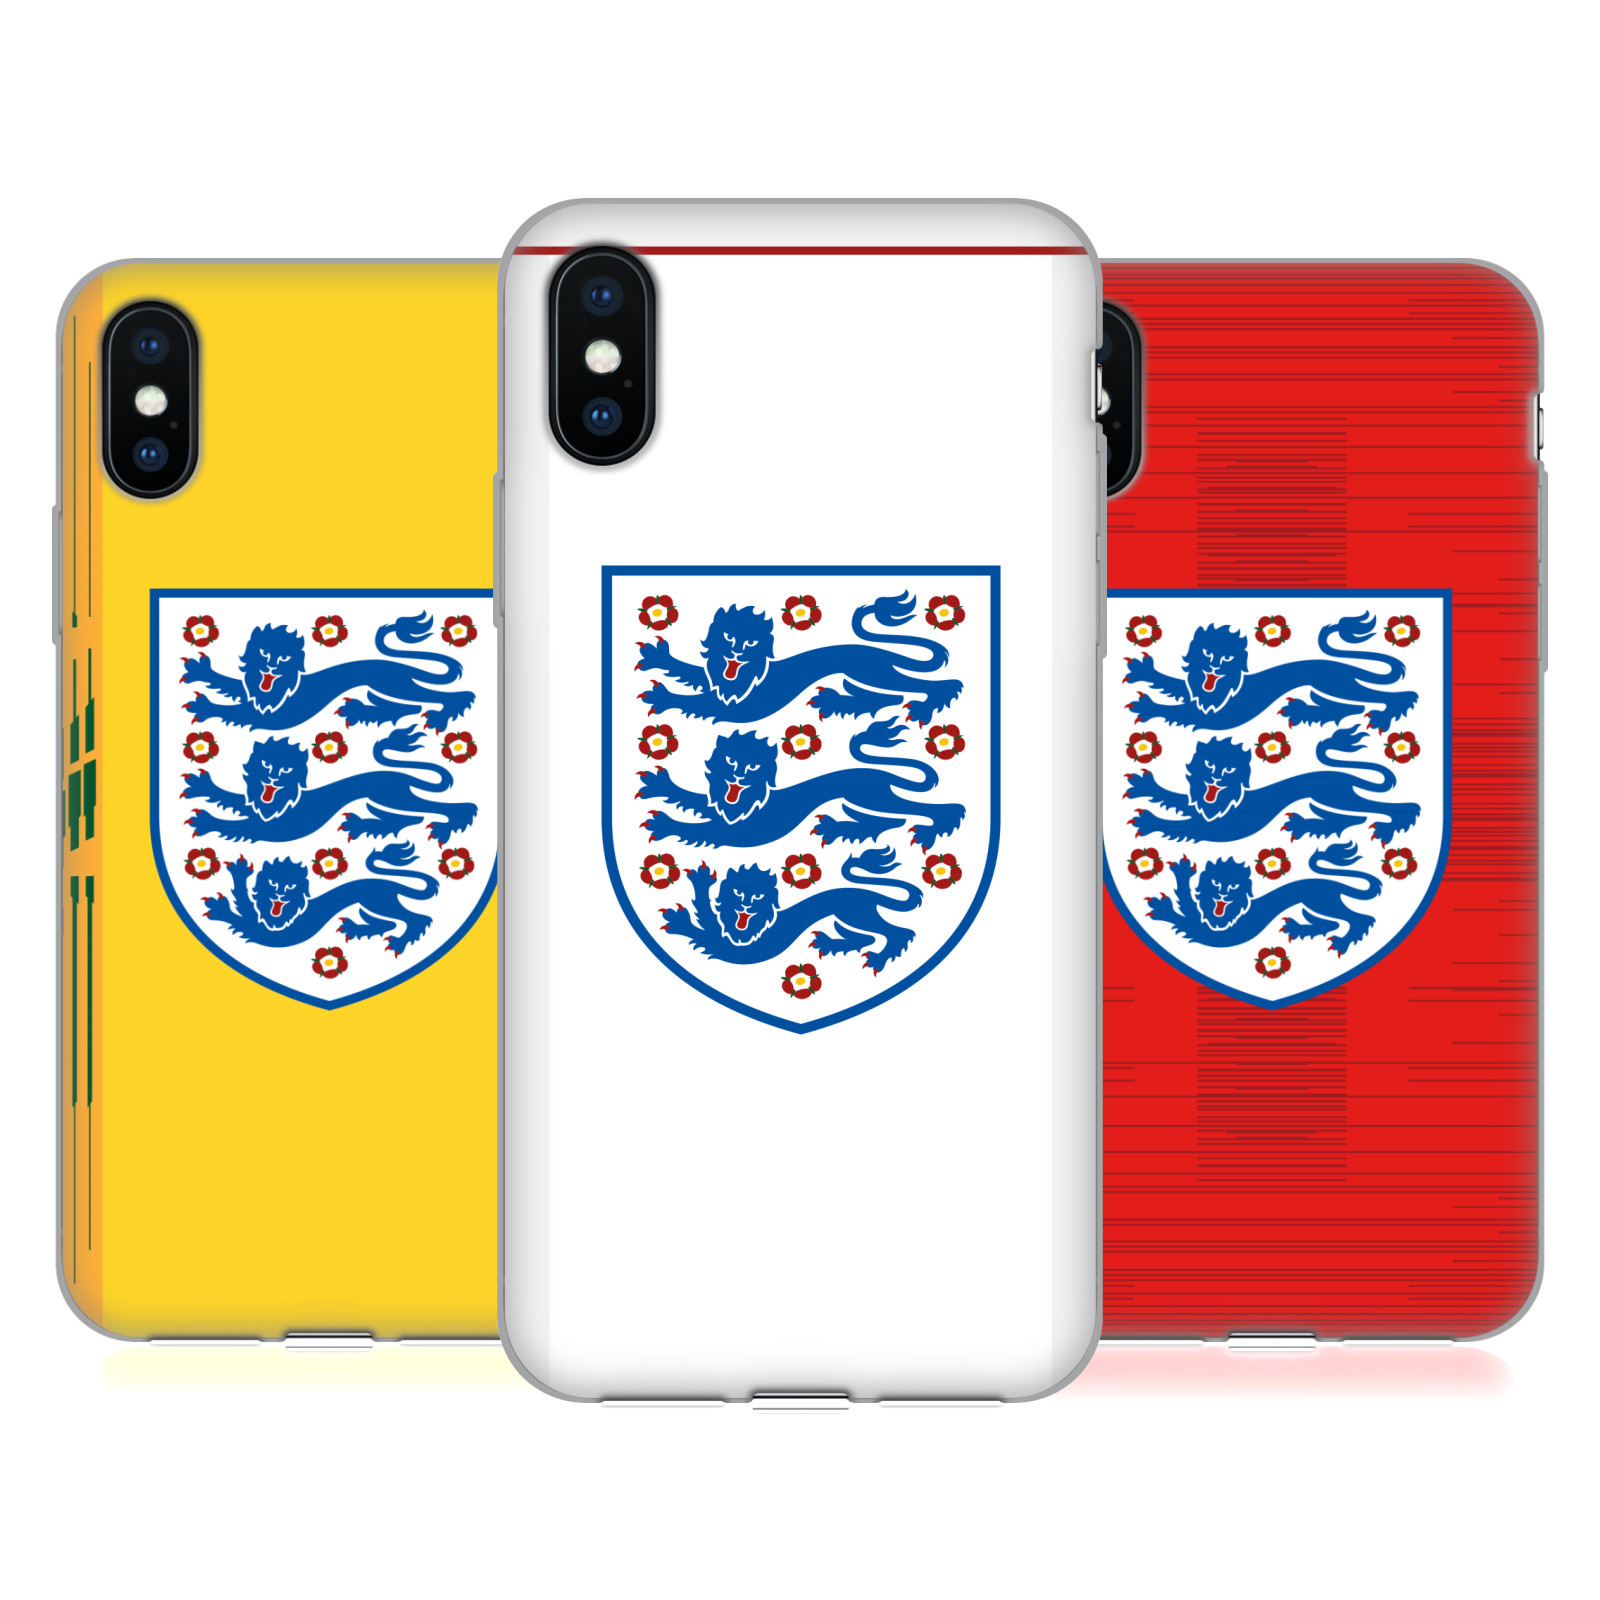 England National Football Team <!--translate-lineup-->2018/19 Crest Kit<!--translate-lineup-->